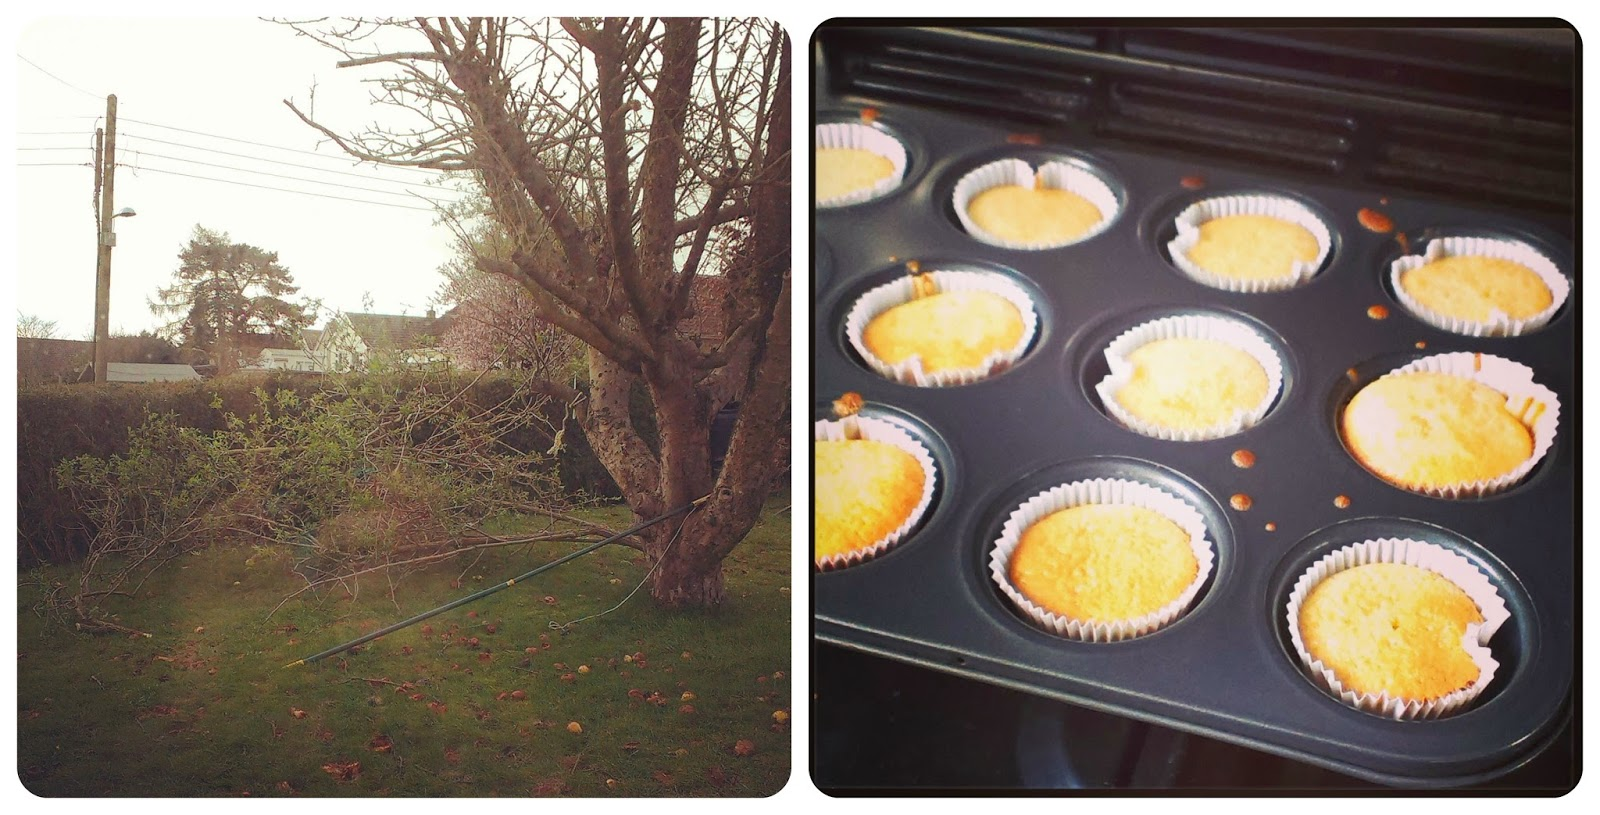 Elder tree pruning and cake baking